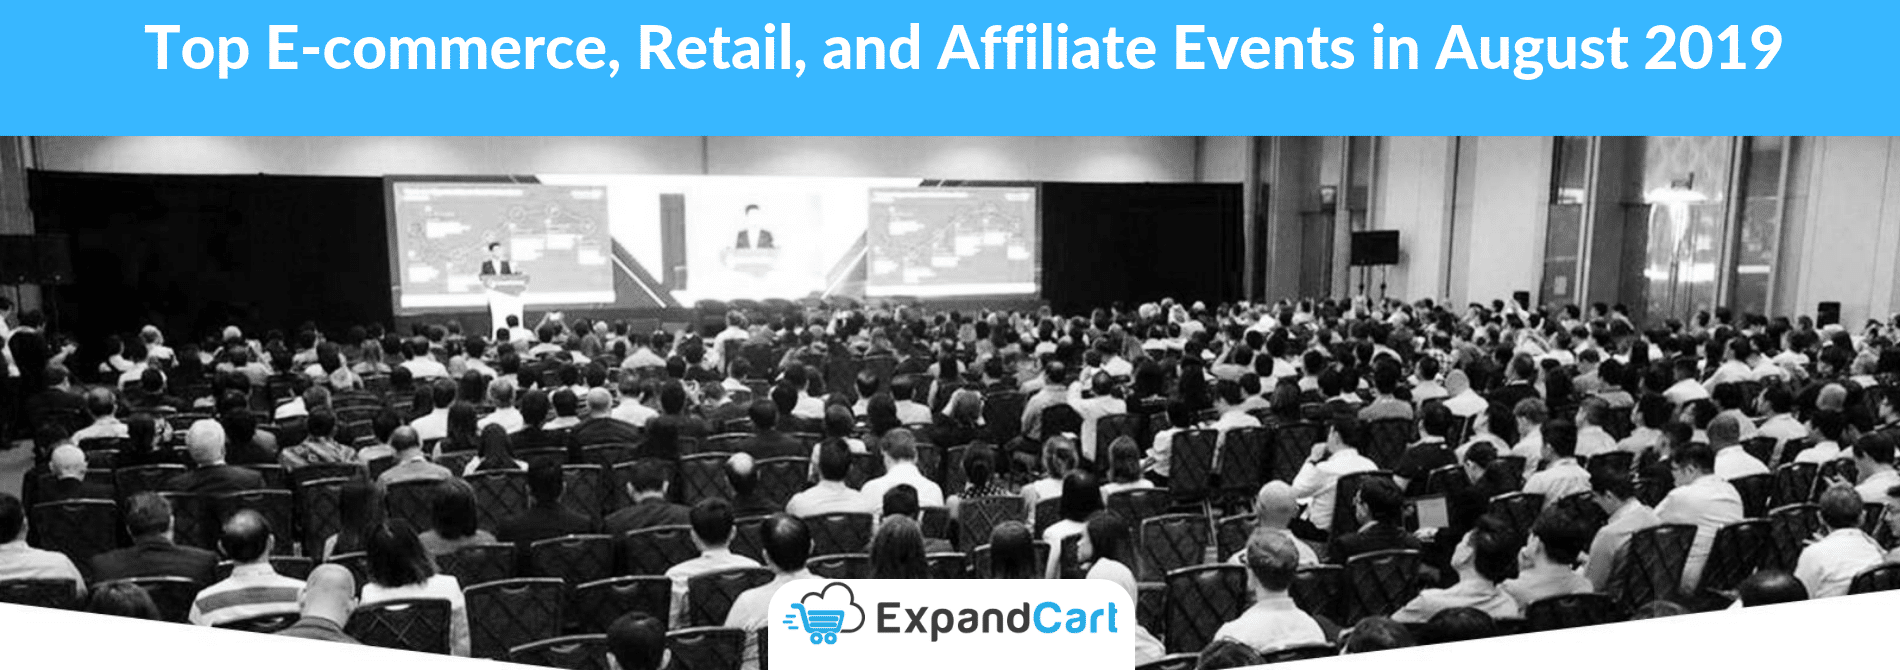 Top E-commerce, Retail, and Affiliate Events in August 2019